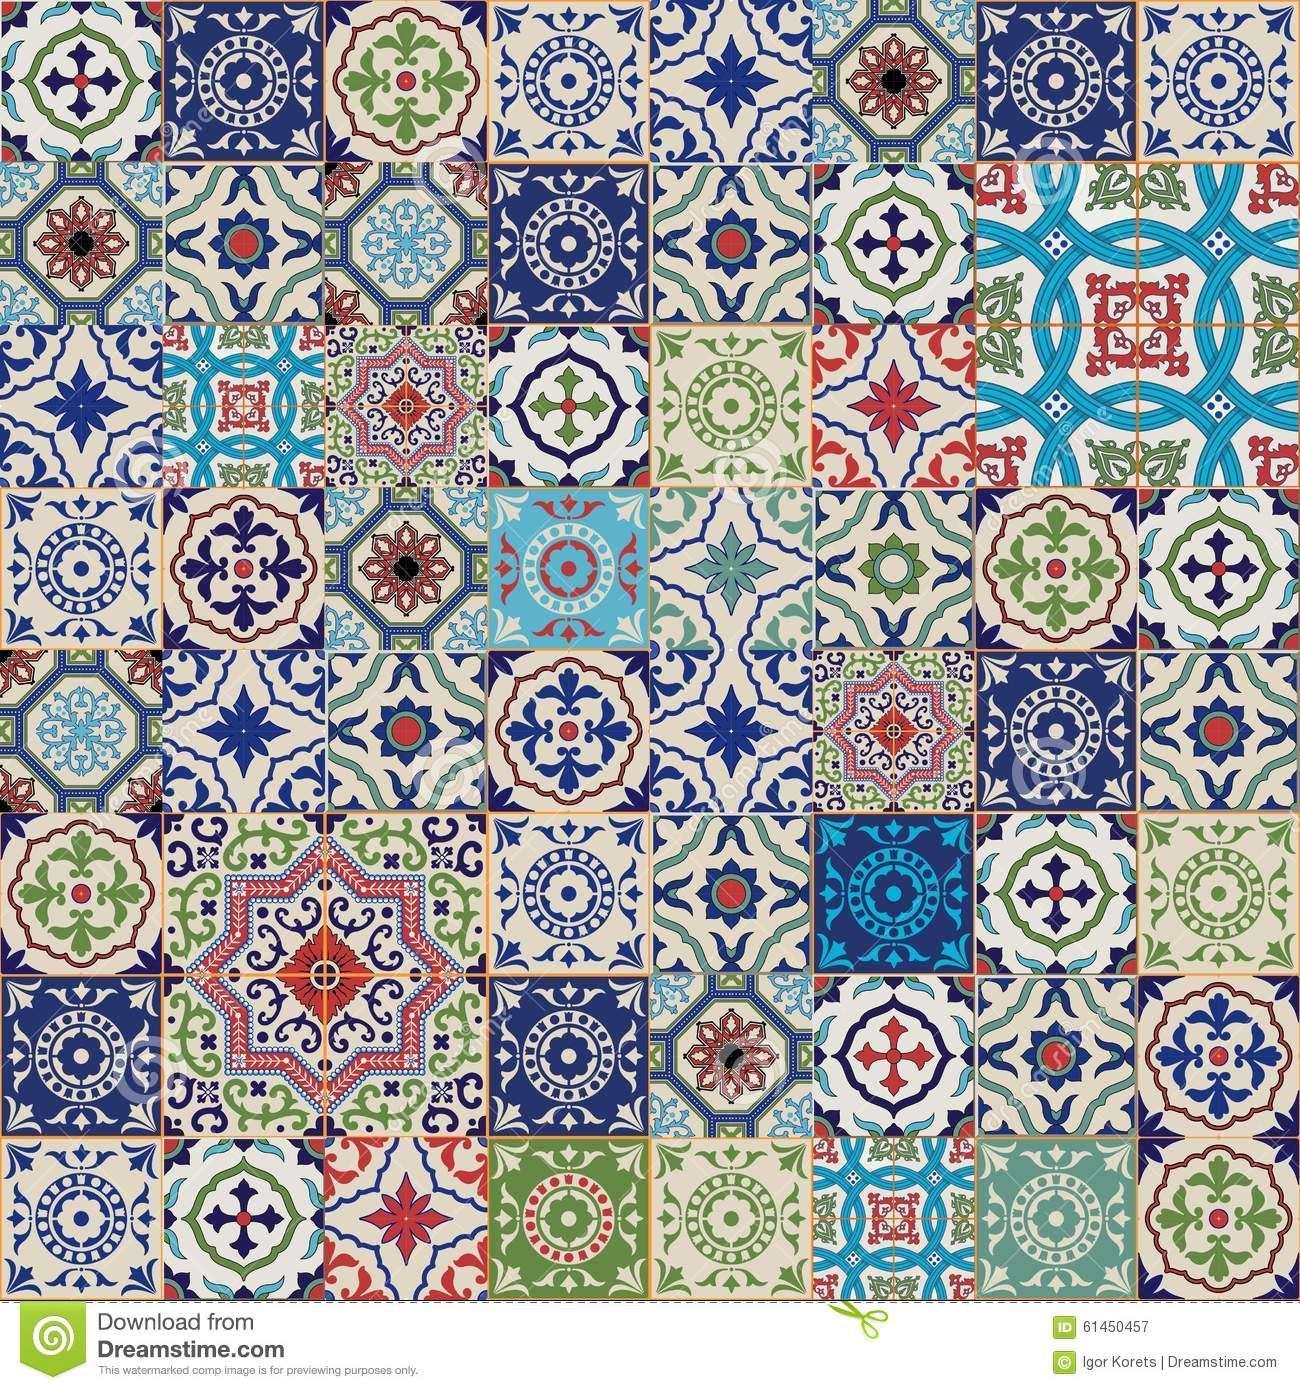 Mega Gorgeous seamless patchwork pattern from colorful Moroccan, Portuguese tiles, Azulejo, ornaments.